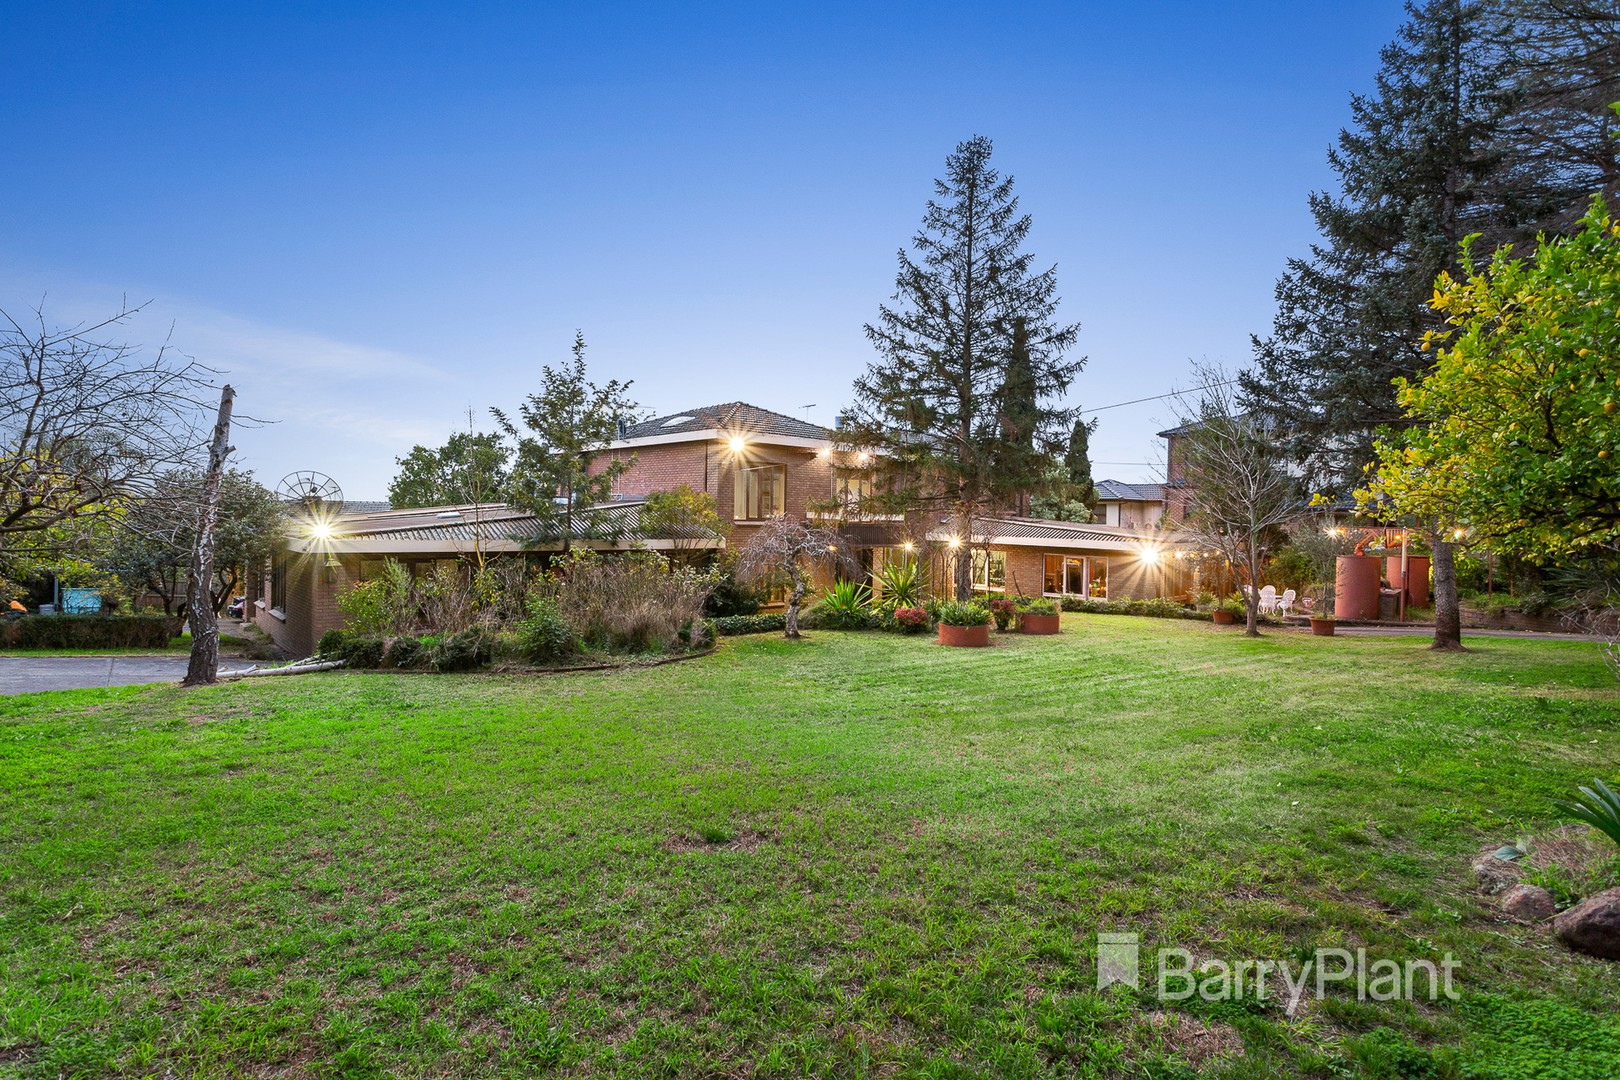 333-337 High Street Templestowe Lower, VIC 3107 - | Barry Plant